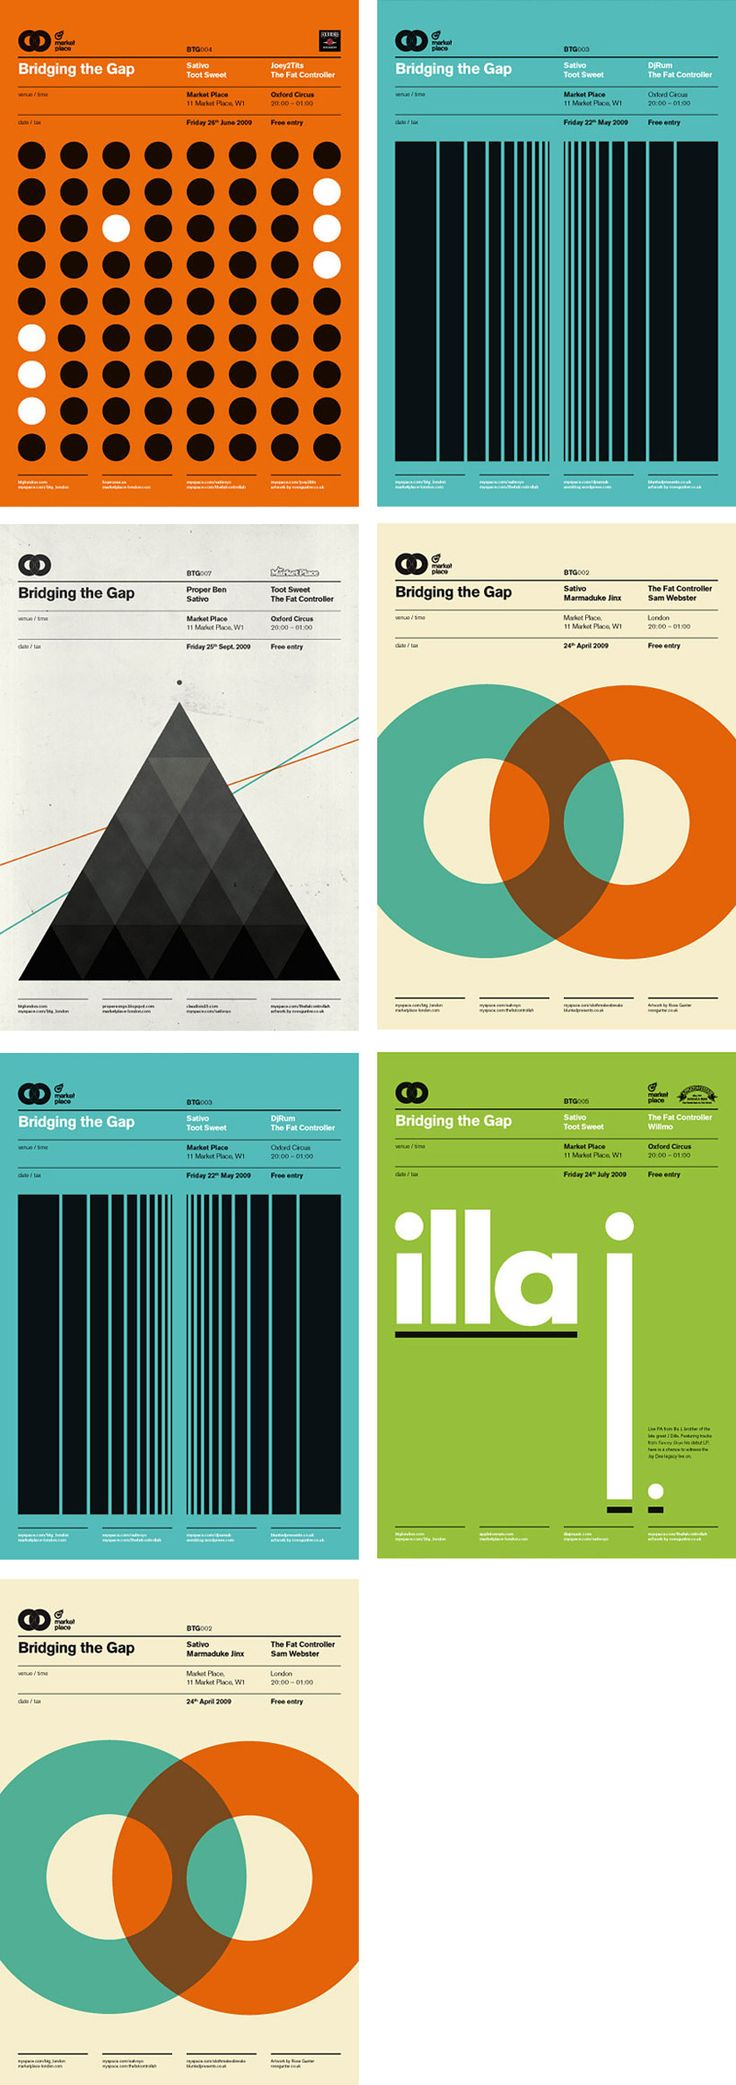 The color-play coloring book moma - Poster Series By Ross Gunter